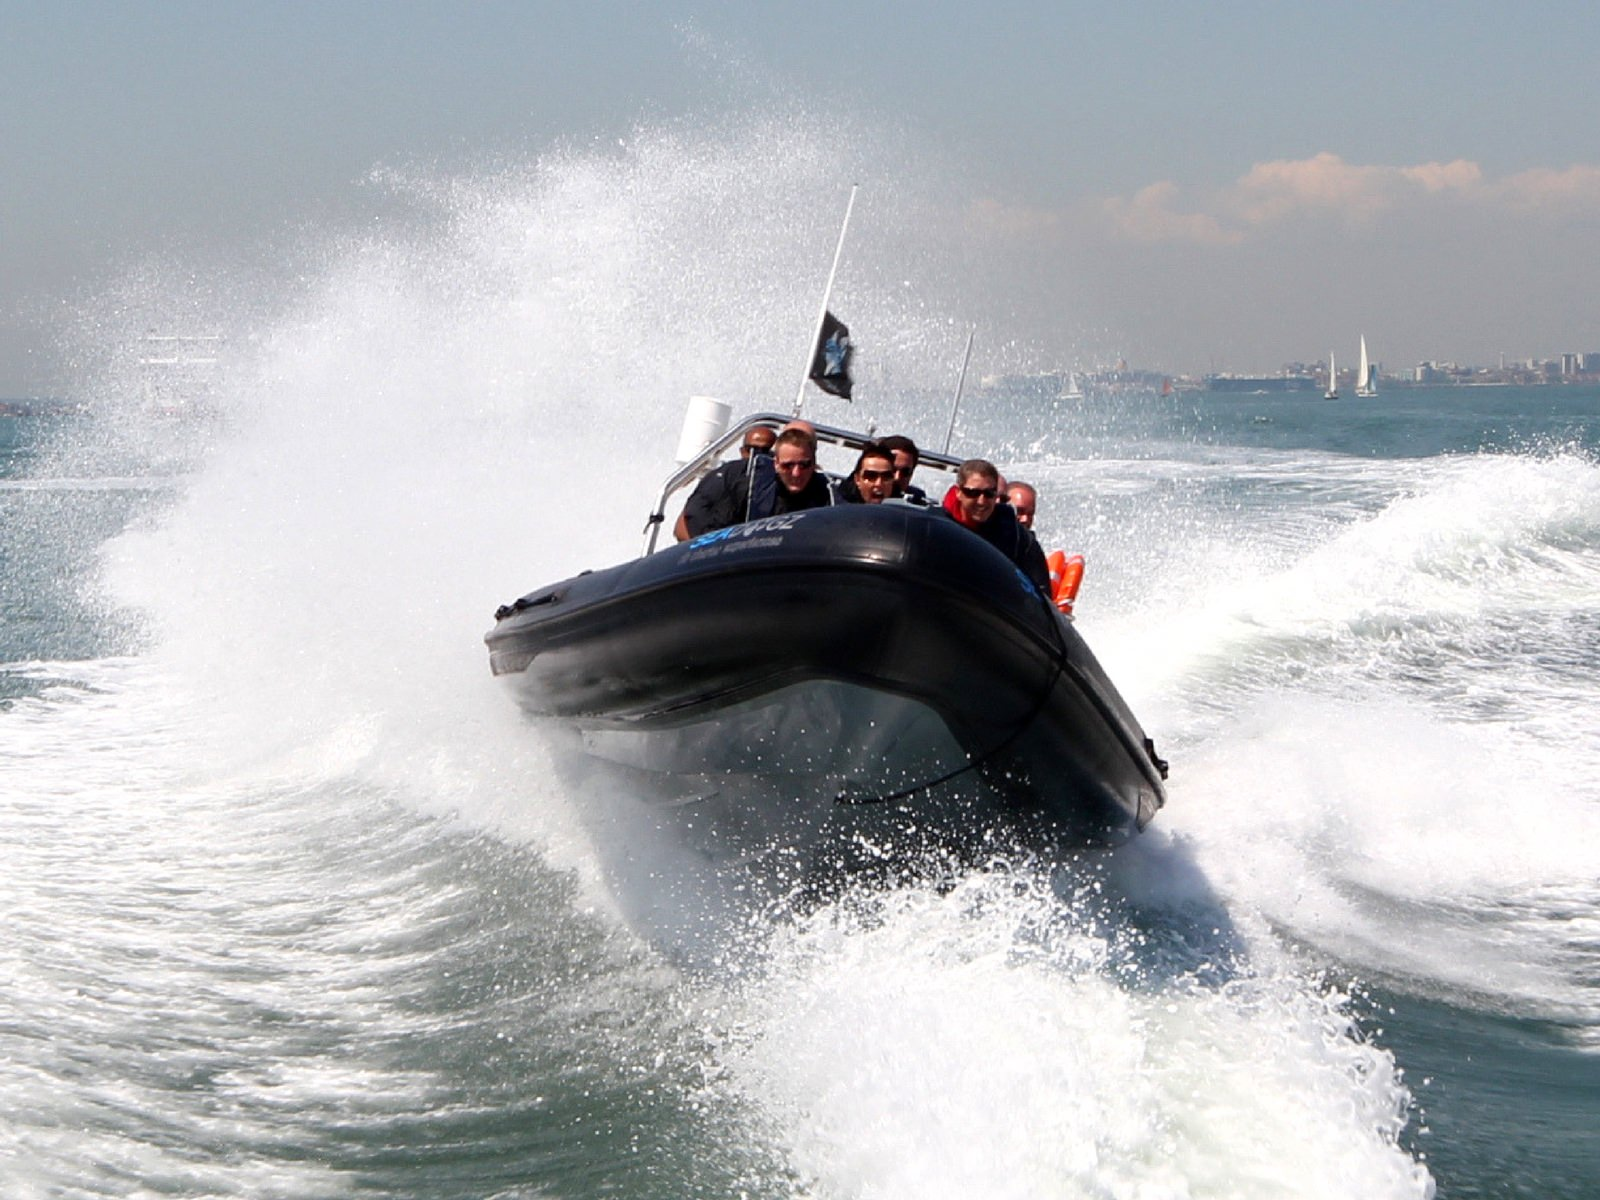 Rib experience days on the solent